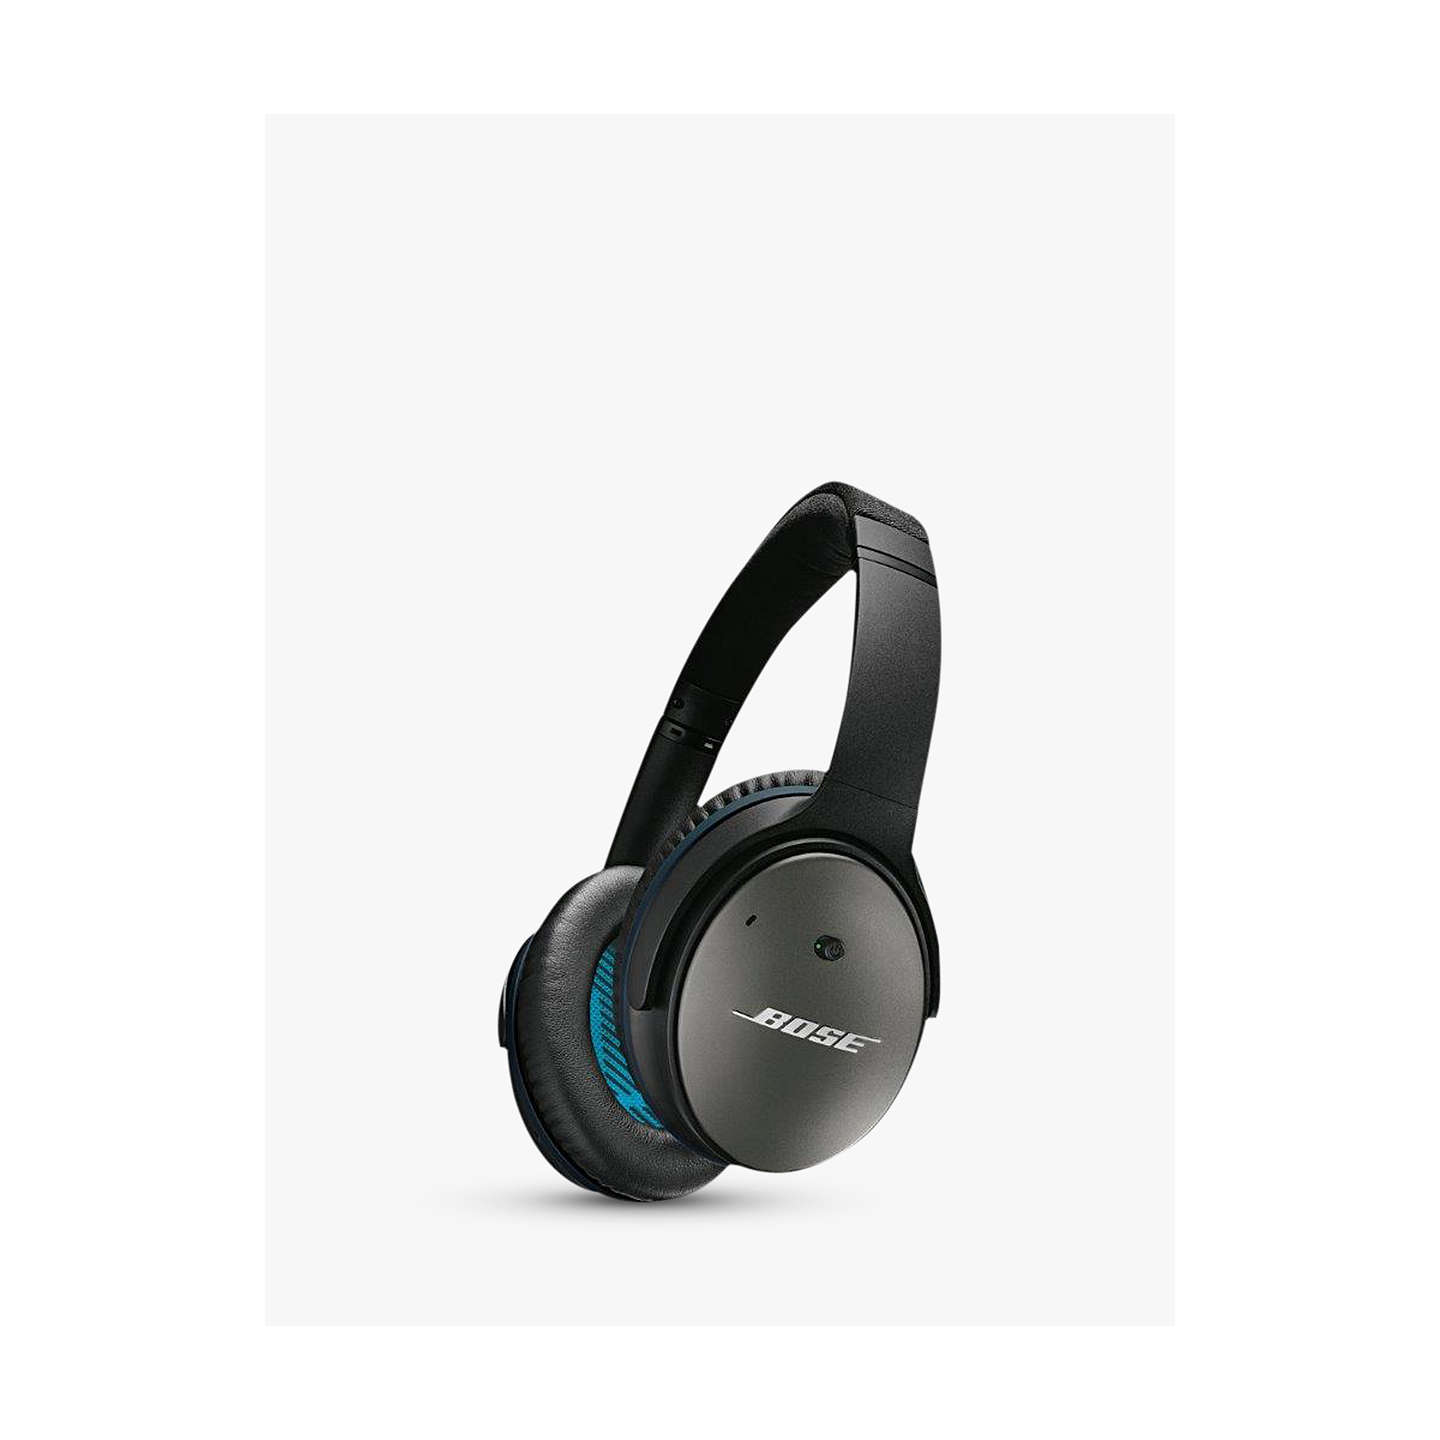 BuyBose® QuietComfort® Noise Cancelling® QC25 Over-Ear Headphones For iOS/ Apple iPhone or iPod, Black Online at johnlewis.com